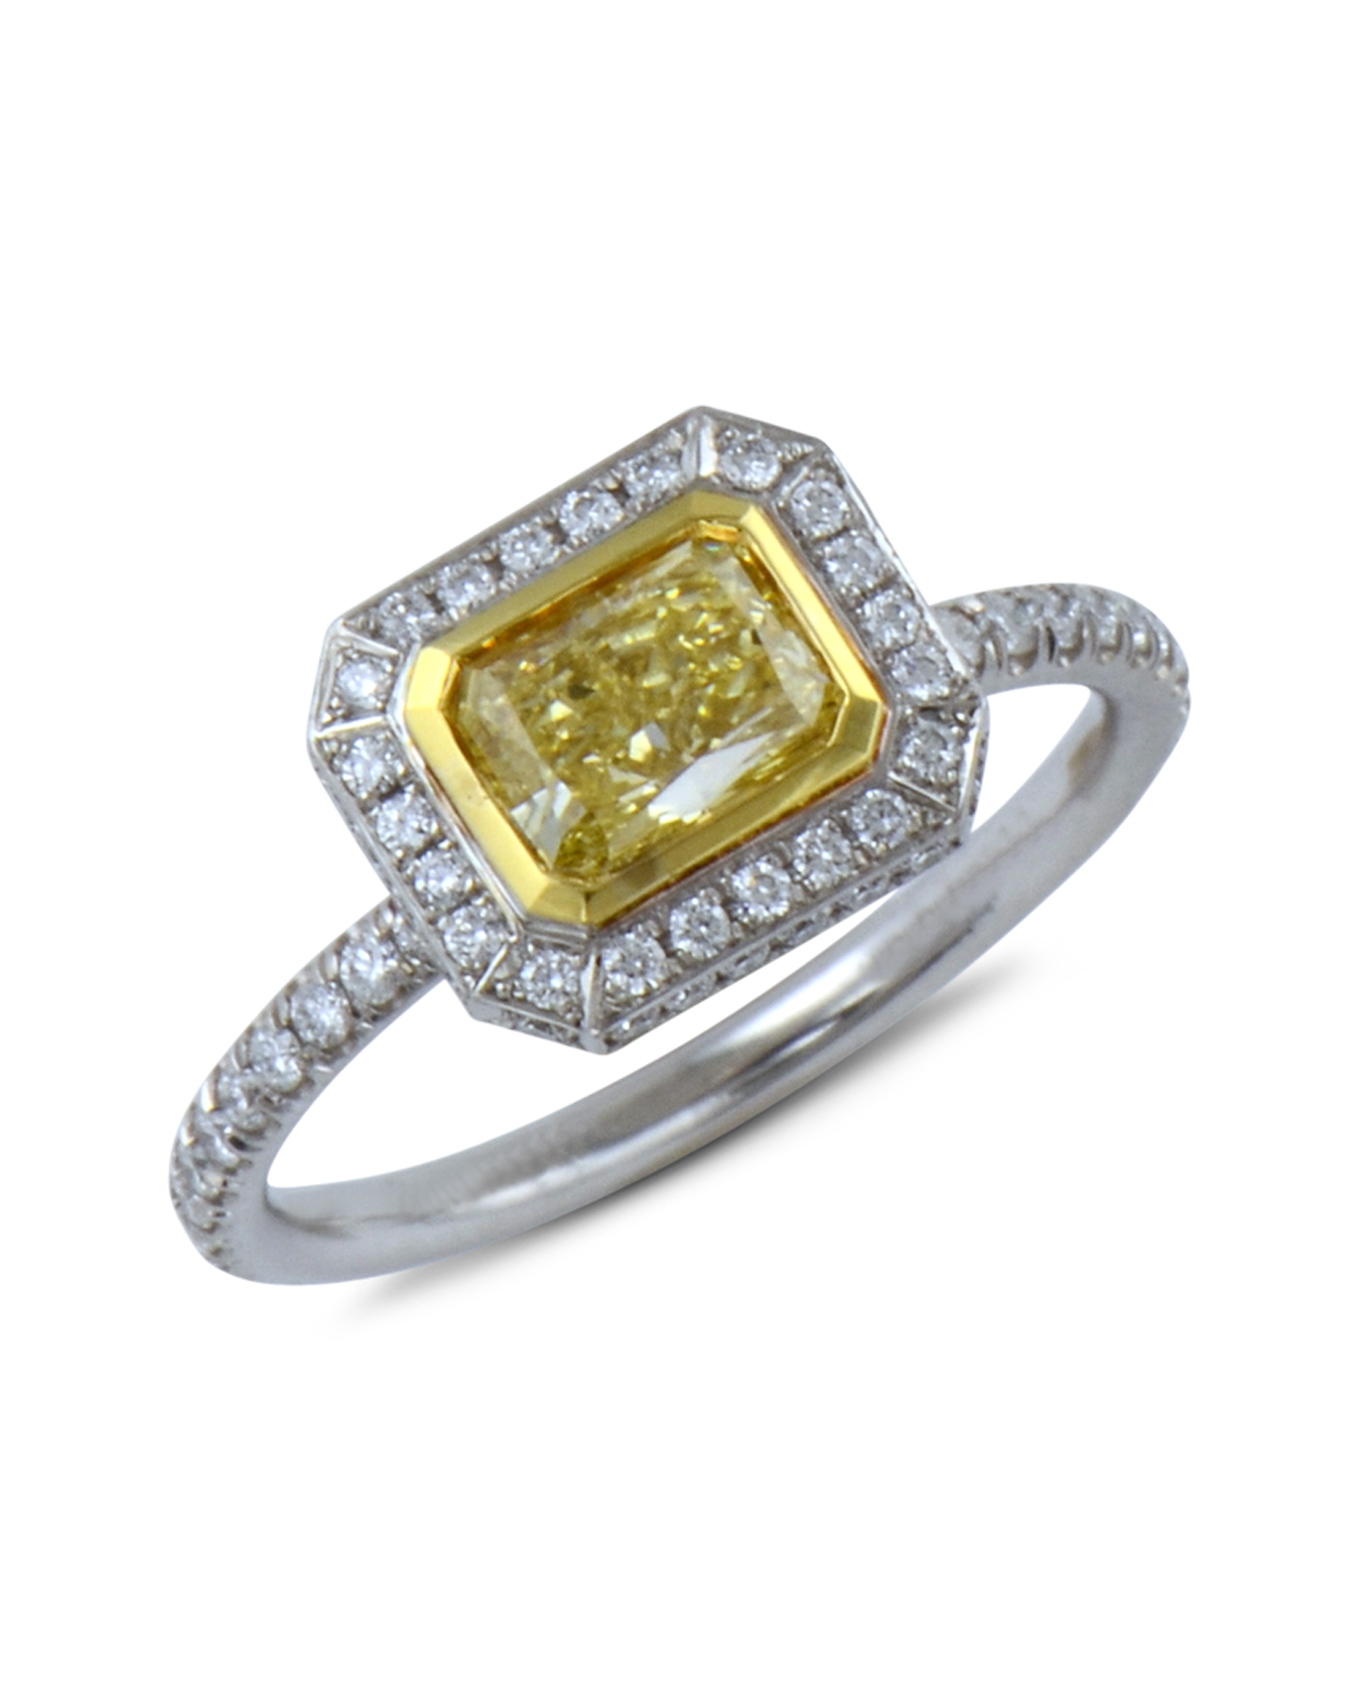 ring rings radiant estate diamond mg r platinum custom mount ct m with cut products